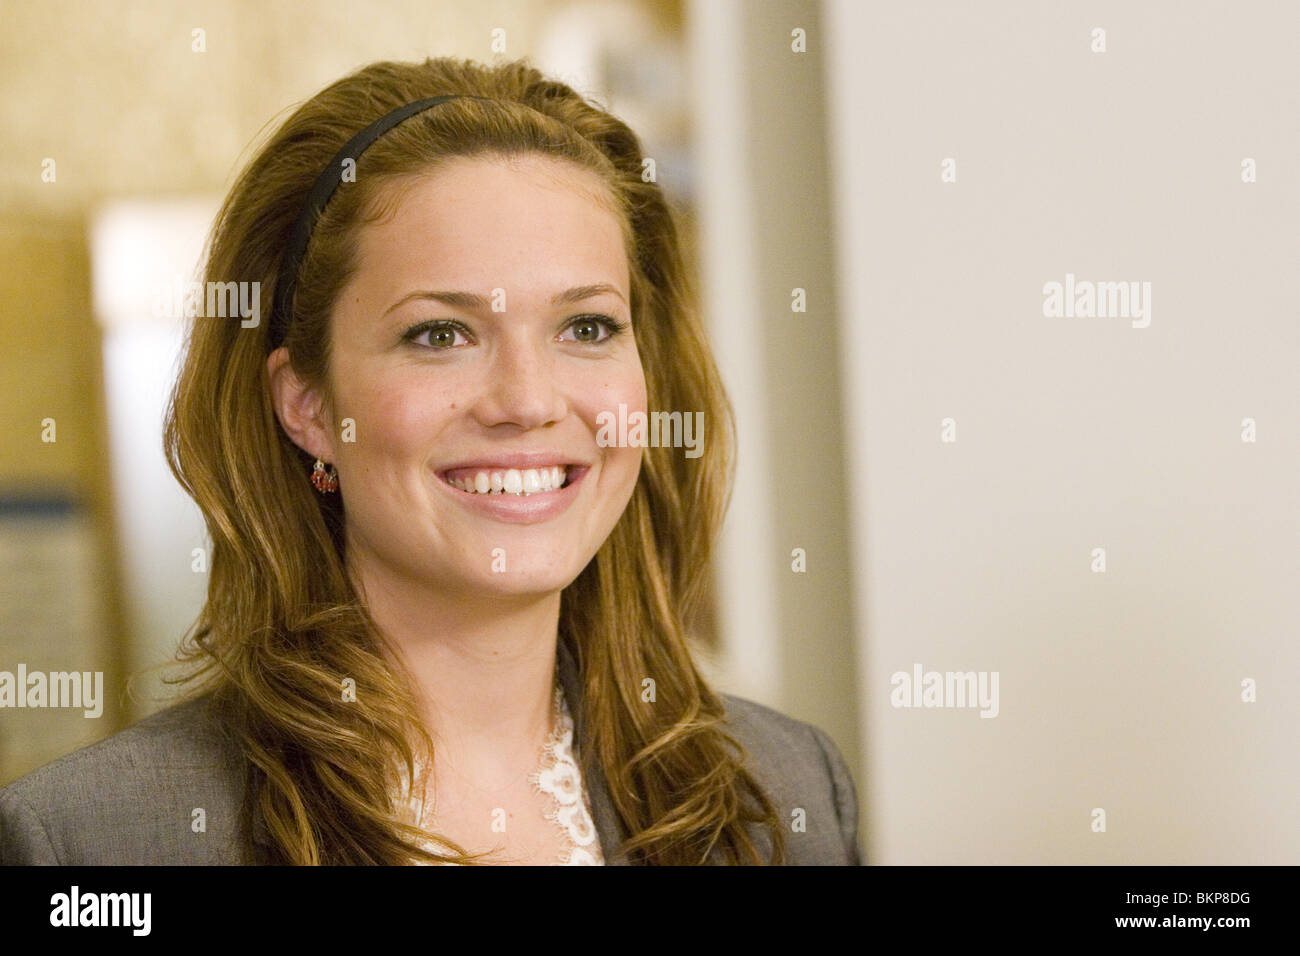 LICENSE TO WED (2007) MANDY MOORE LTWO 001-09 - Stock Image